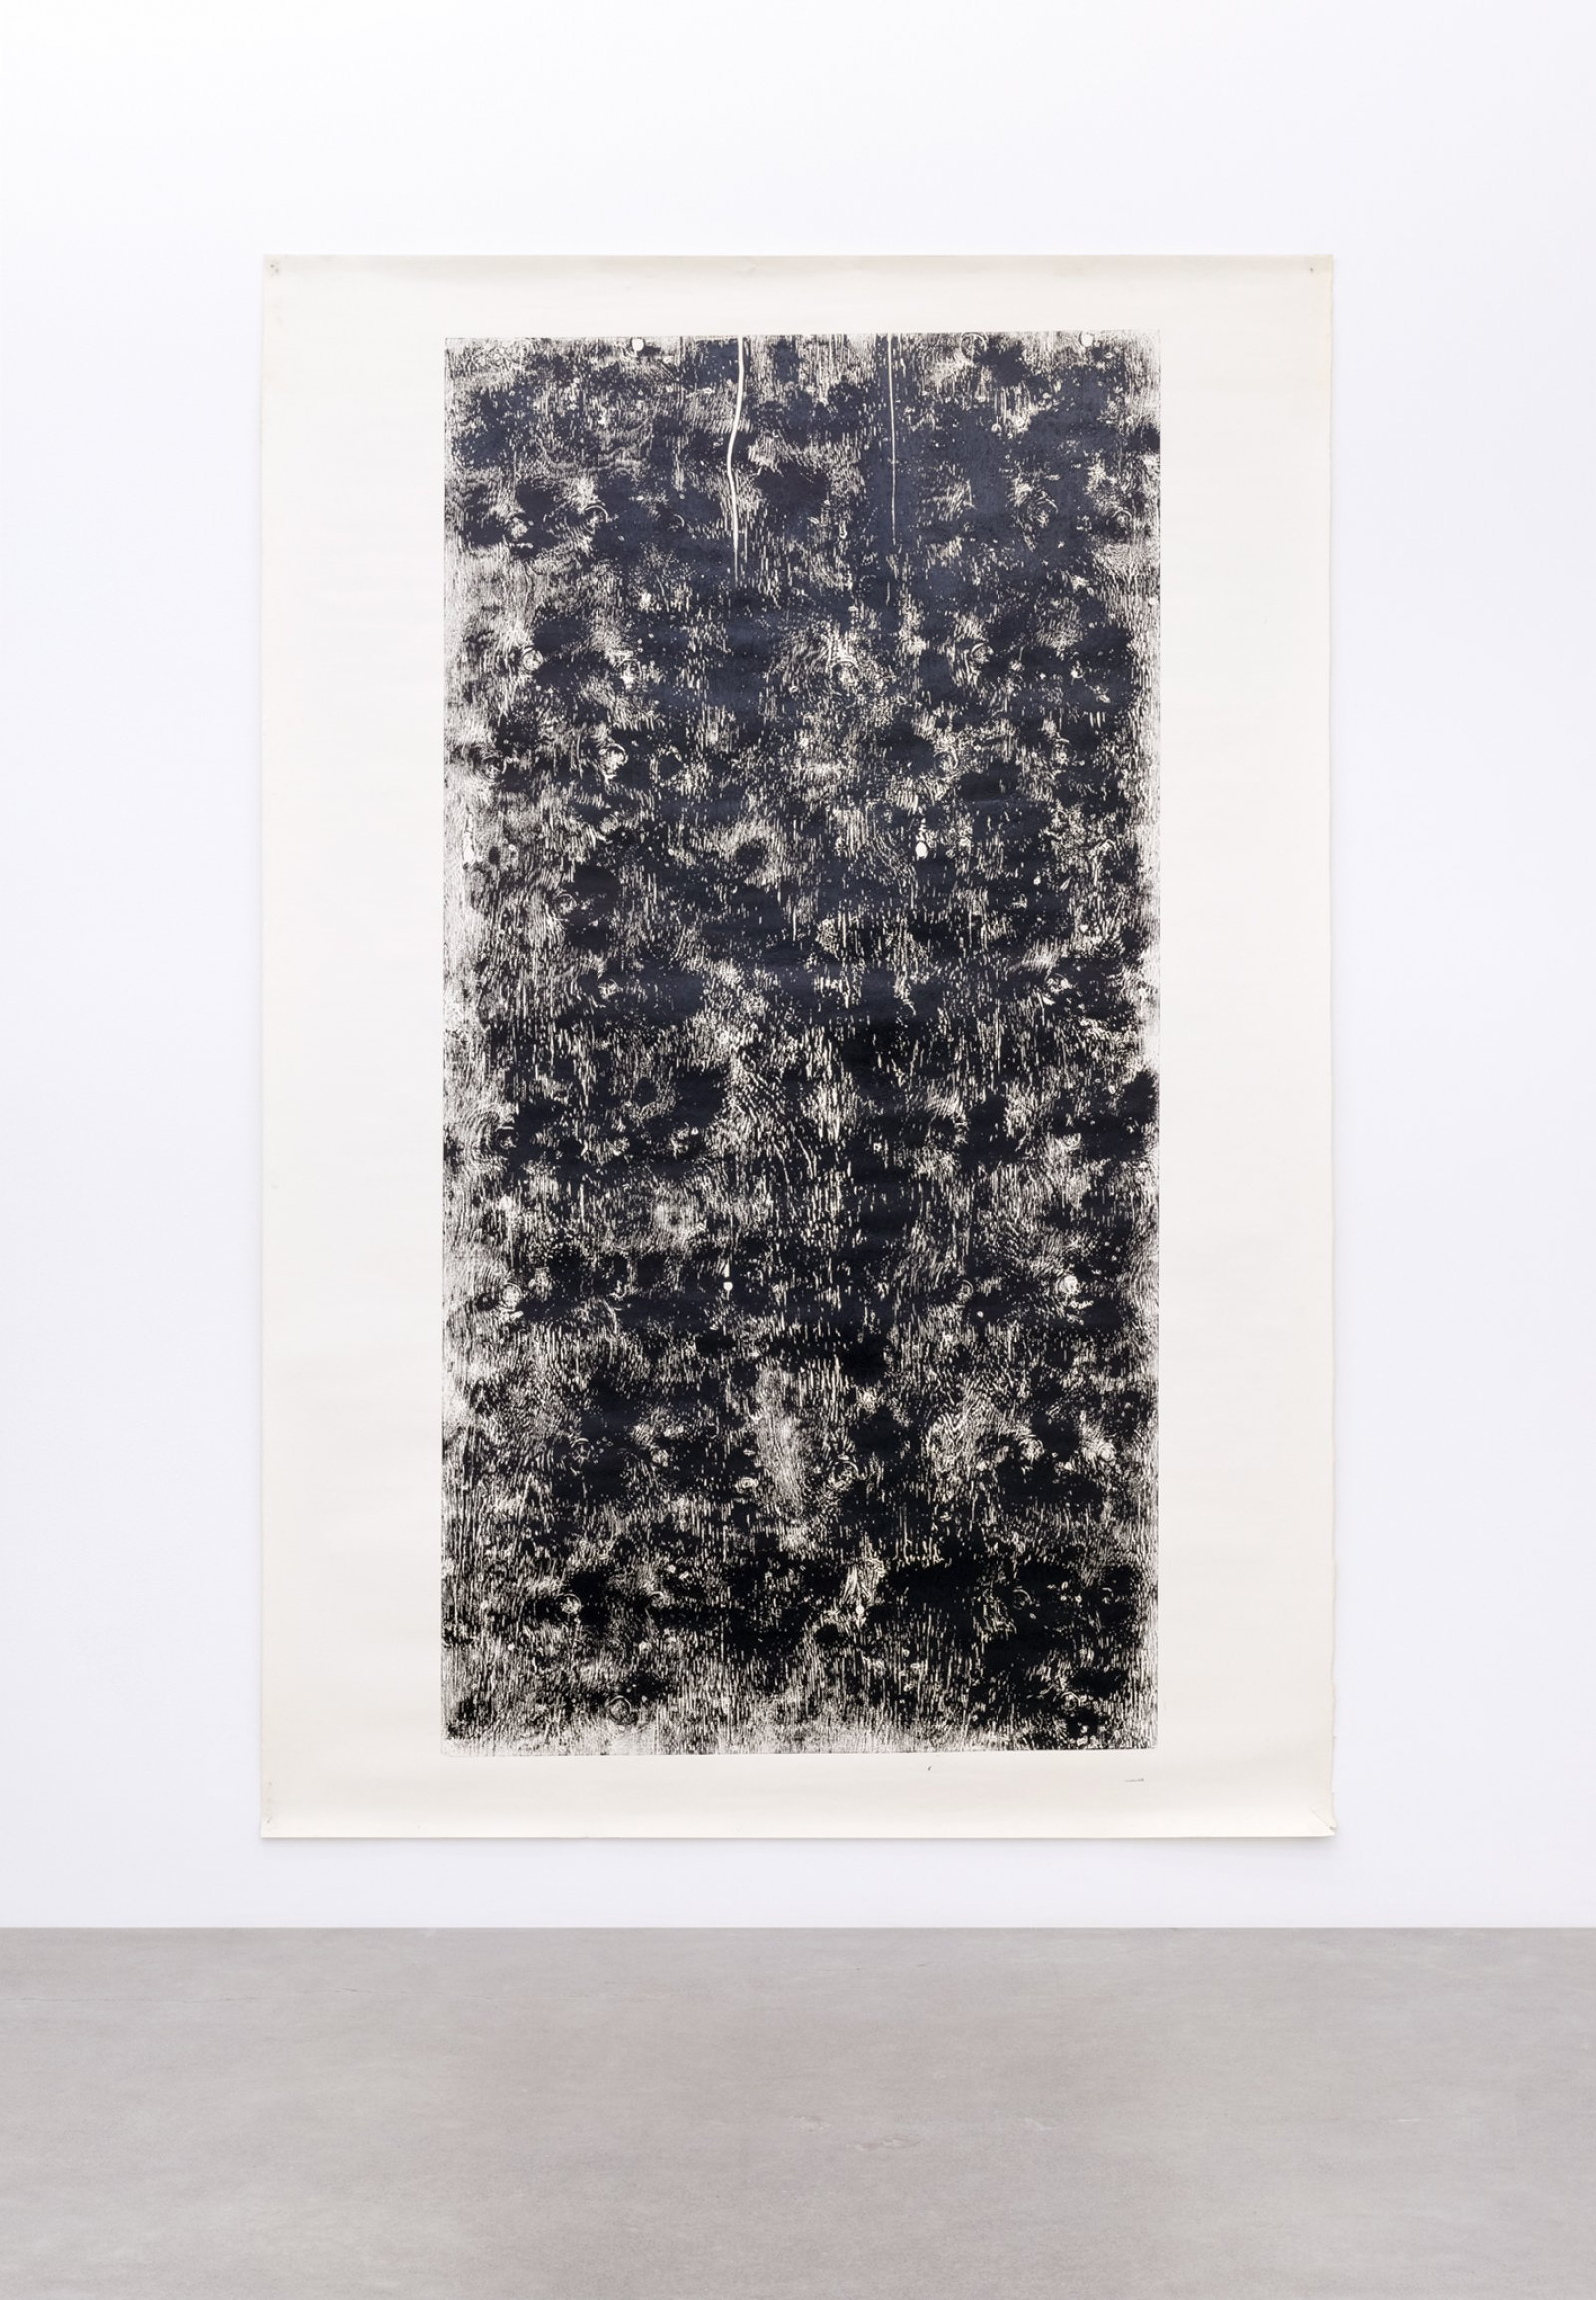 Ian Wallace, Untitled (Monoprint), 1990, ink on paper, 108 x 72 in. (274 x 183 cm) by Ian Wallace